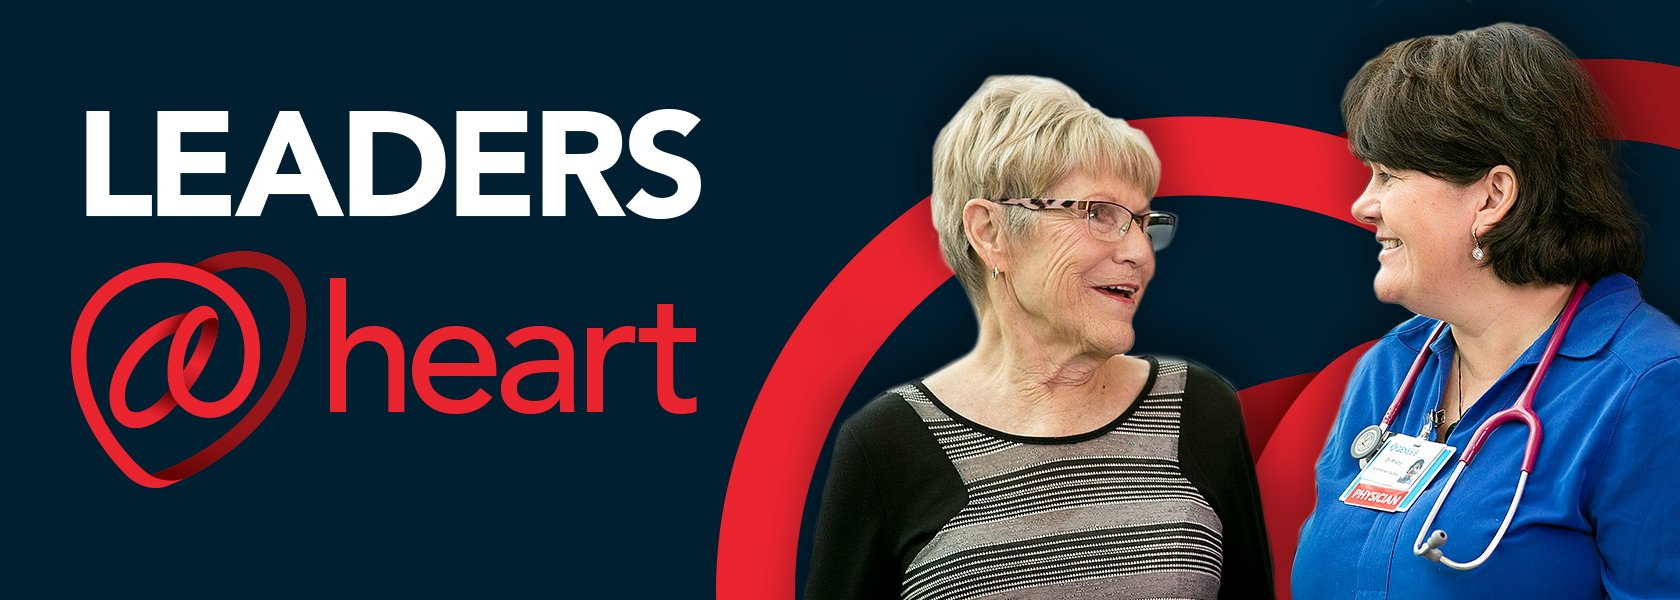 Leaders at Heart: Introducing Eva Proctor, MD, Genesis Health Group Cardiac Surgery